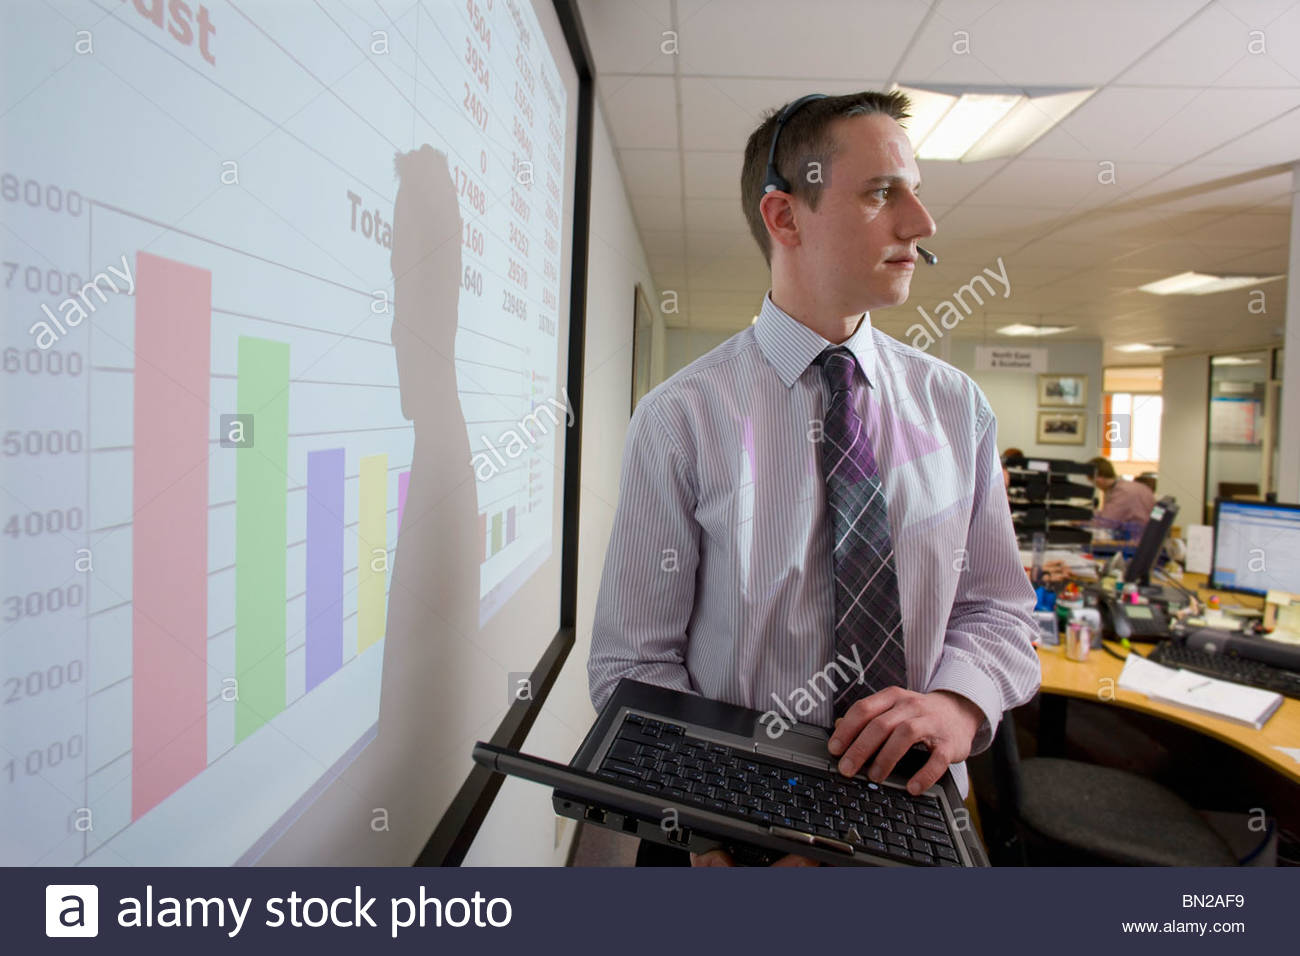 Businessman wearing headset and holding laptop in front of data on projection screen - Stock Image